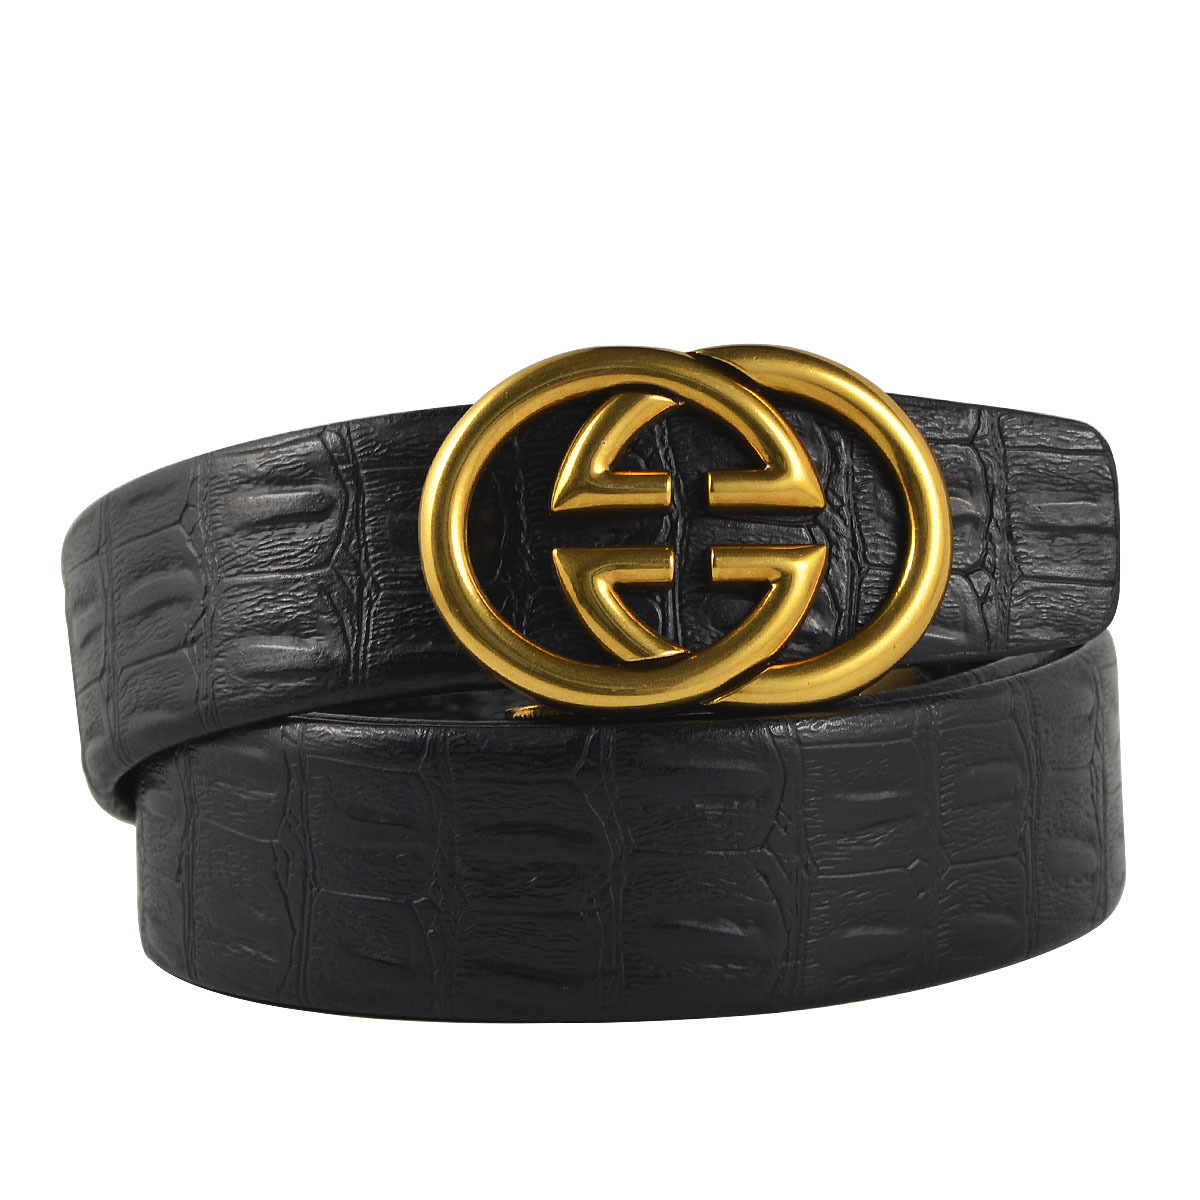 Luxury Designer H   Belts   Men High Quality Male Women Genuine Real Leather   Belt   GG Retro Buckle Strap for Jeans Mens Accessory